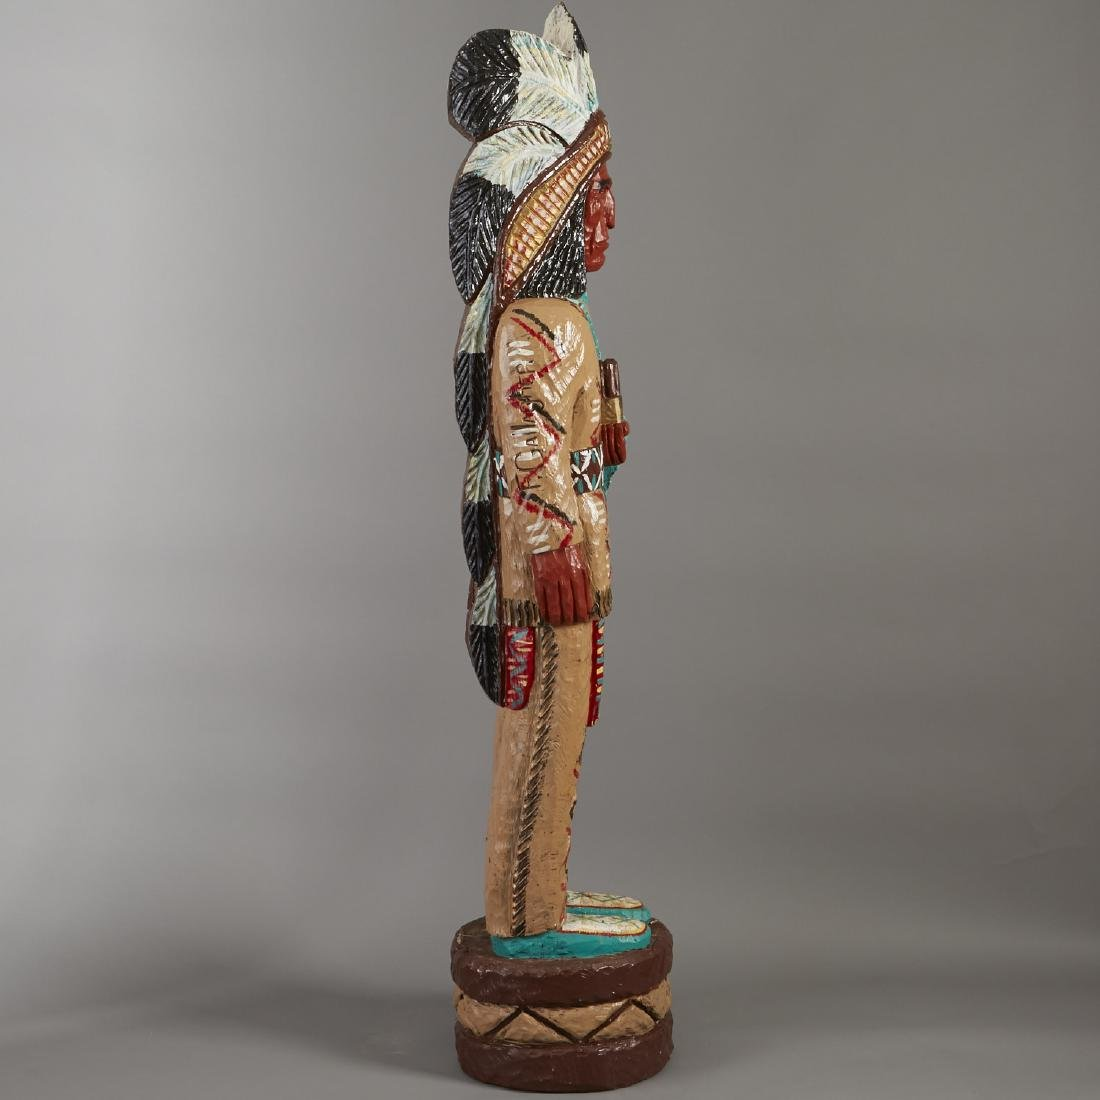 Carved Wood Cigar Store Indian Statue - 3